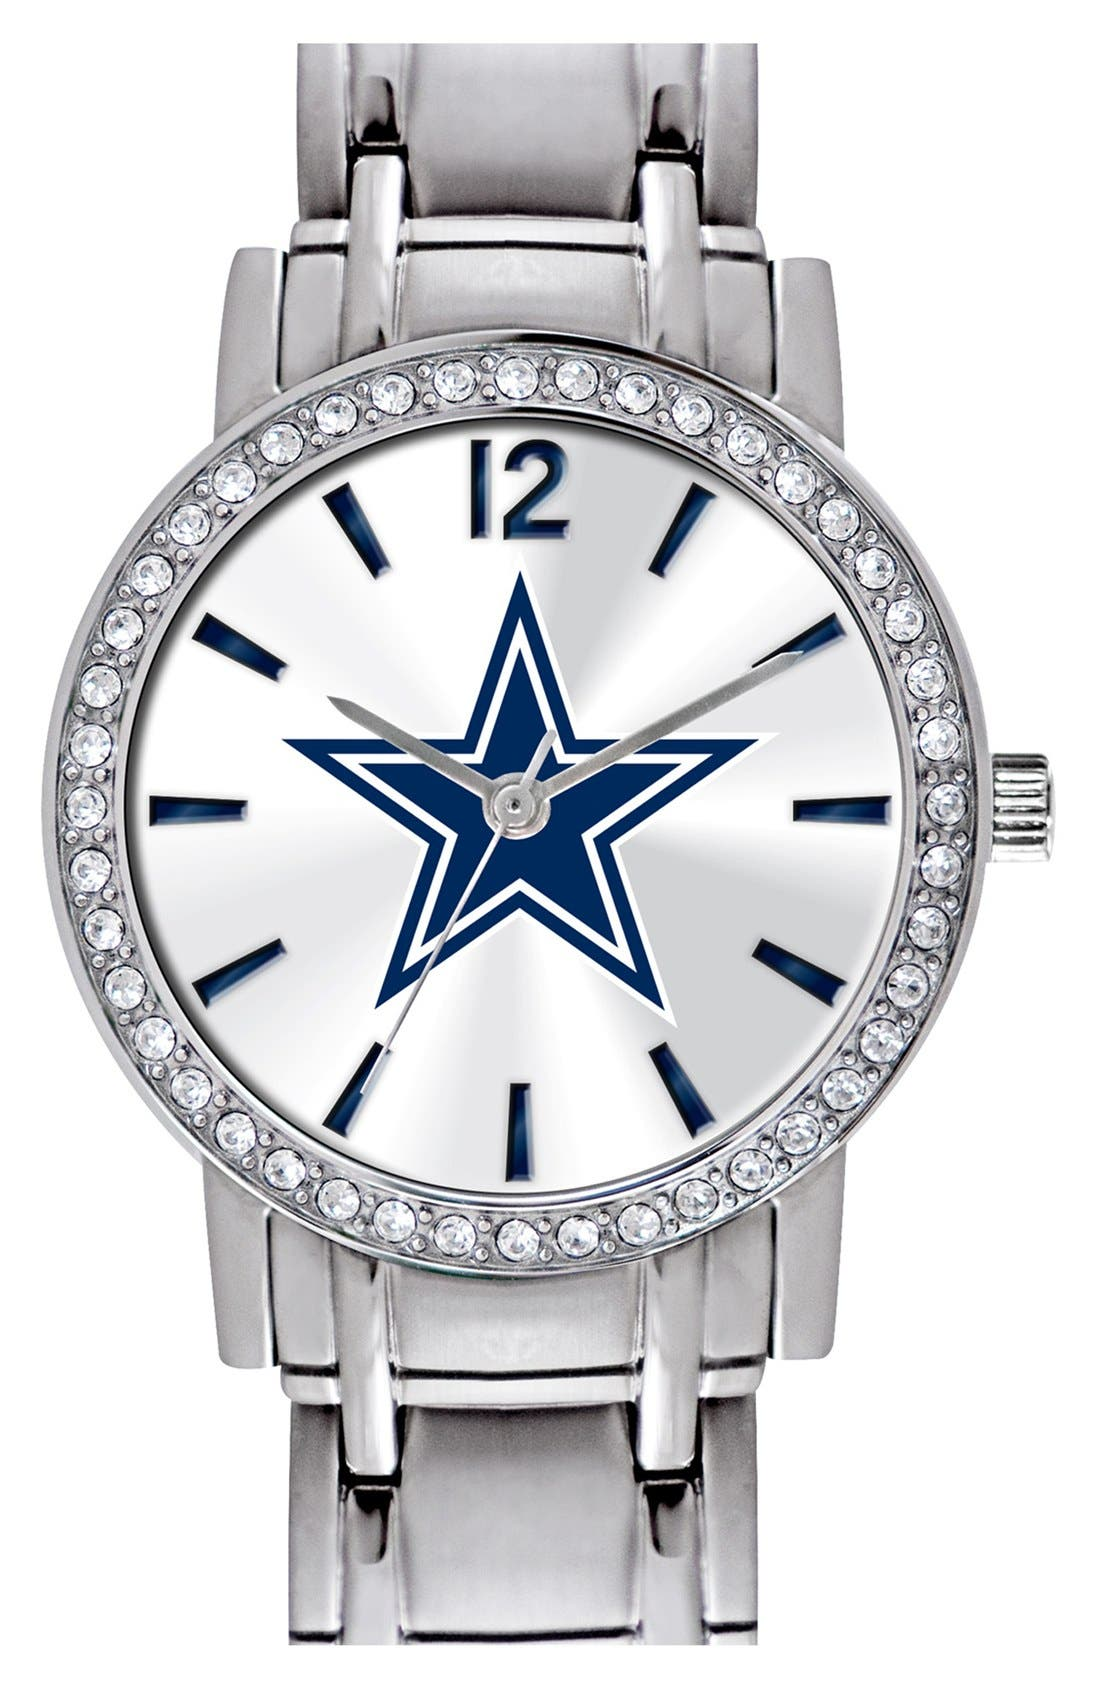 Main Image - Game Time Watches 'NFL All Star - Dallas Cowboys' Crystal Bezel Bracelet Watch, 32mm